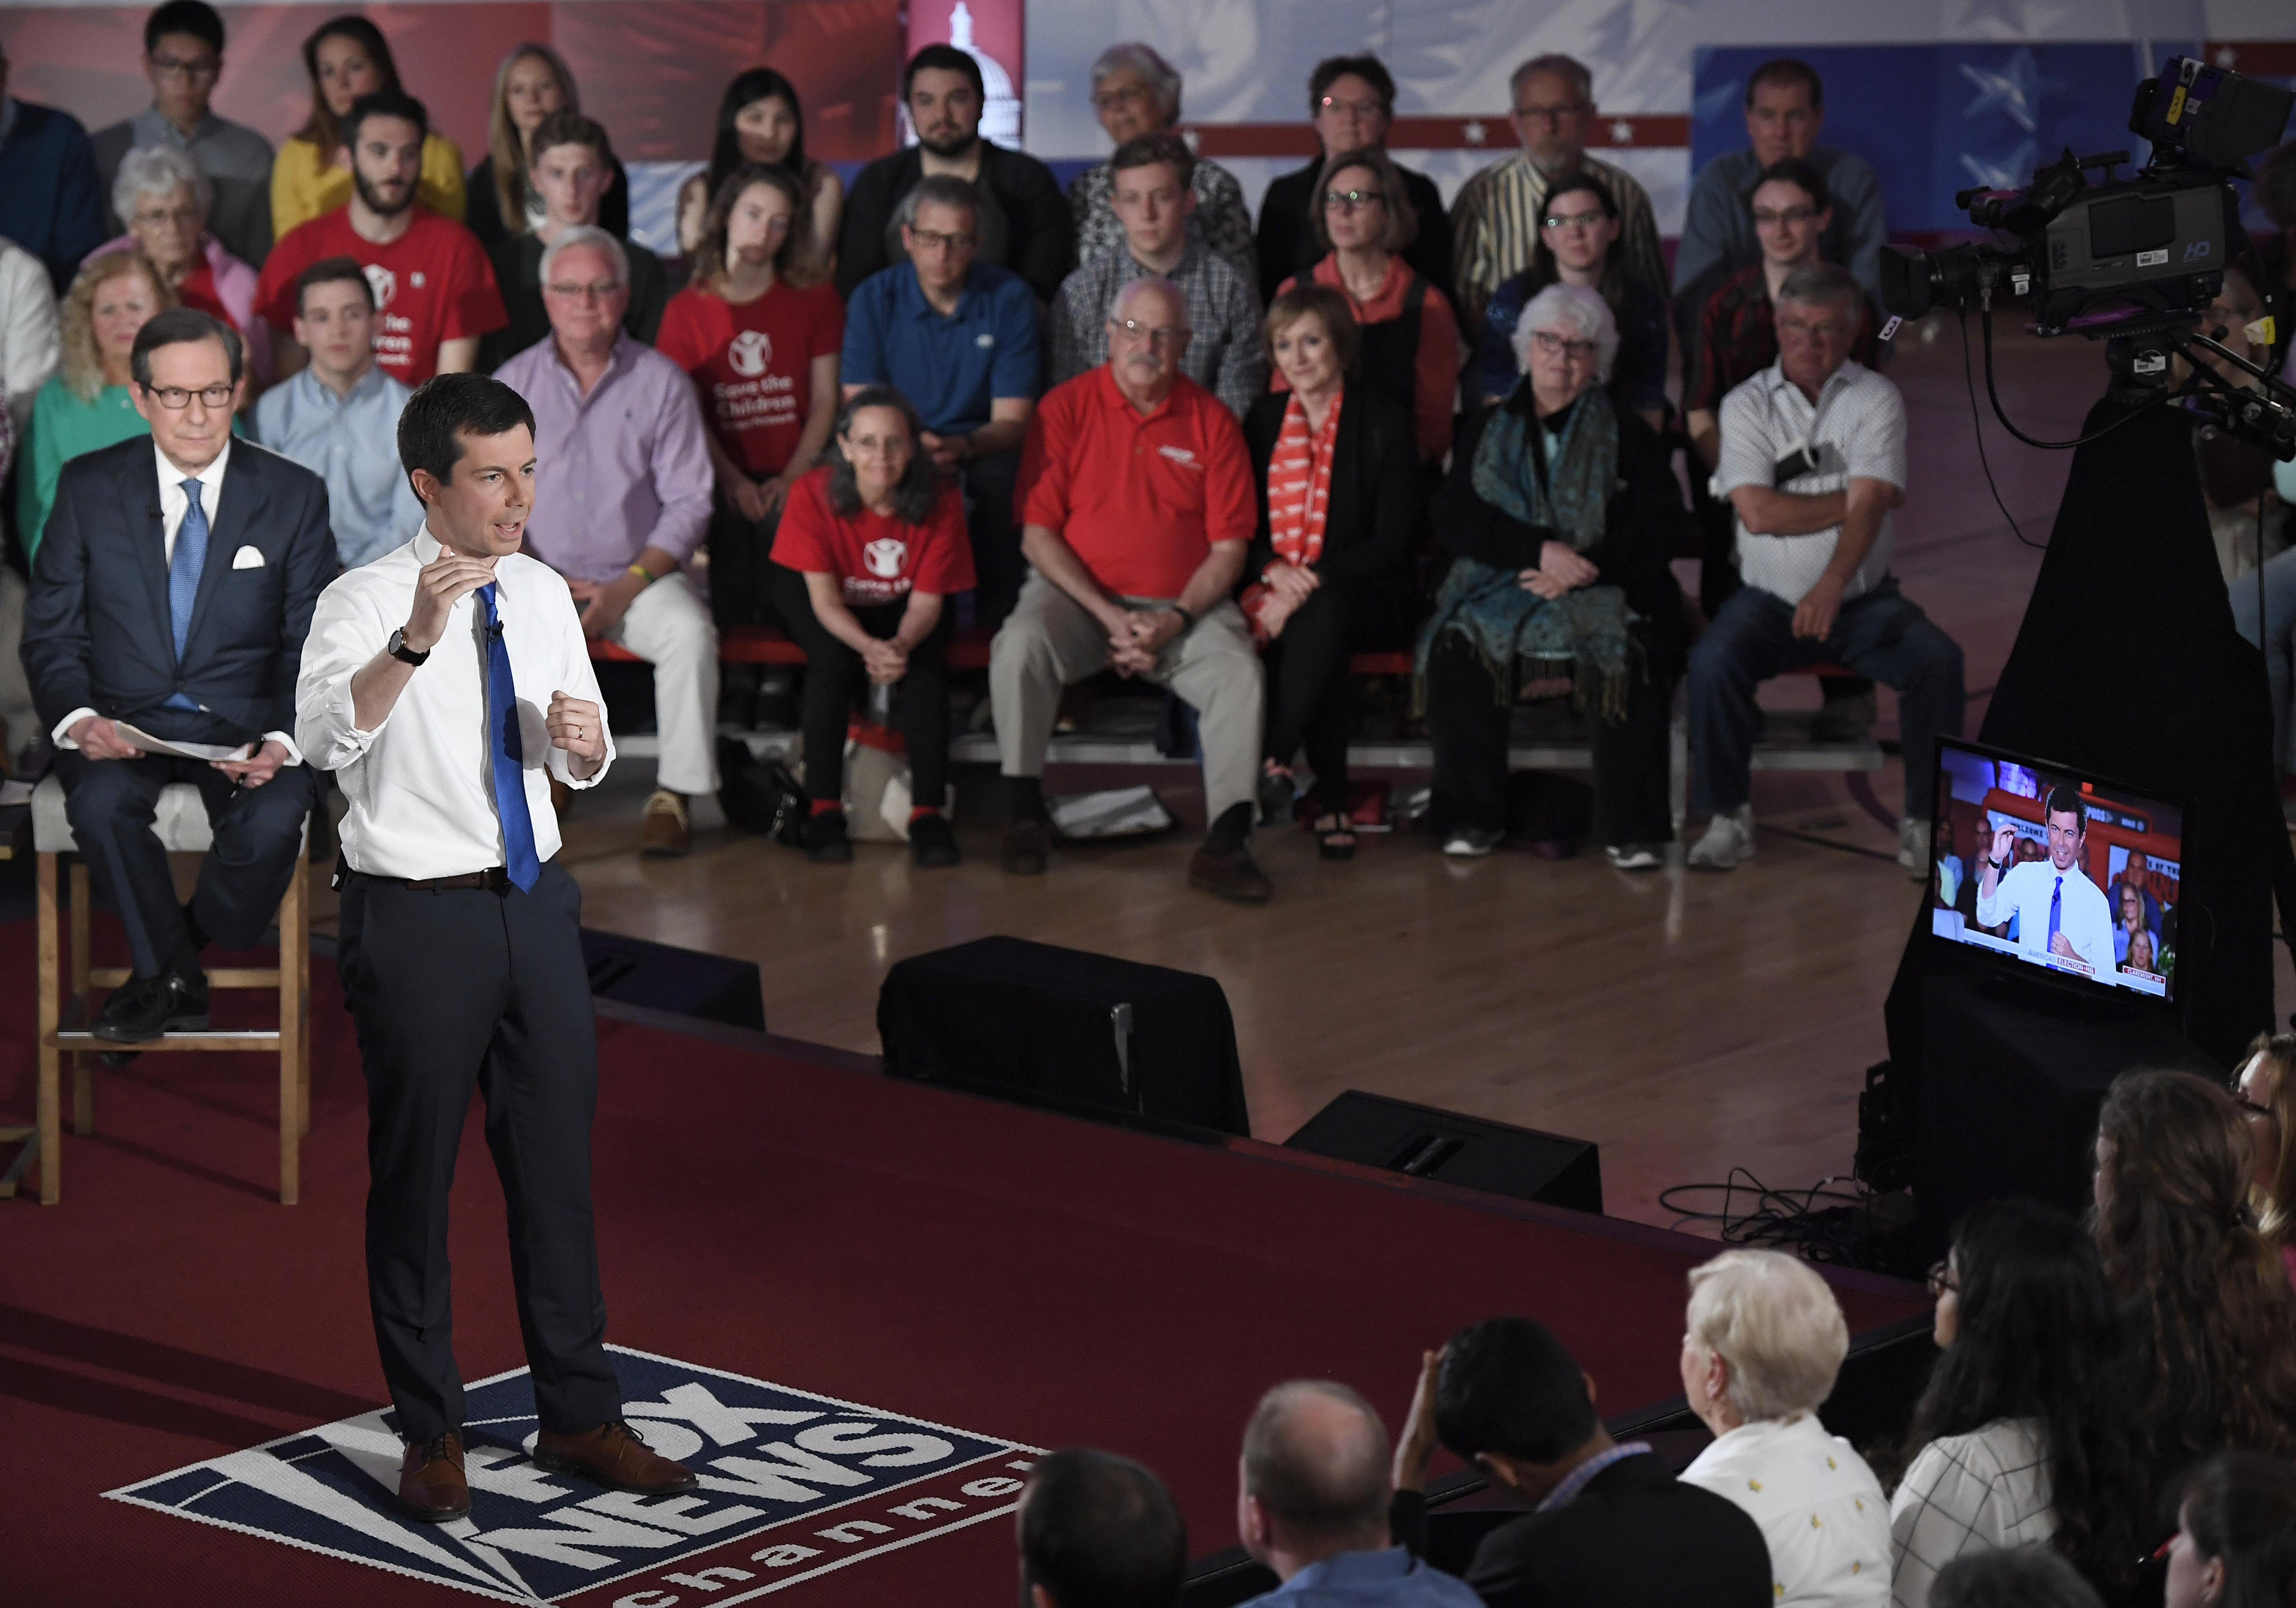 Most Democrats say it's appropriate for 2020 candidates to do Fox News town halls: poll